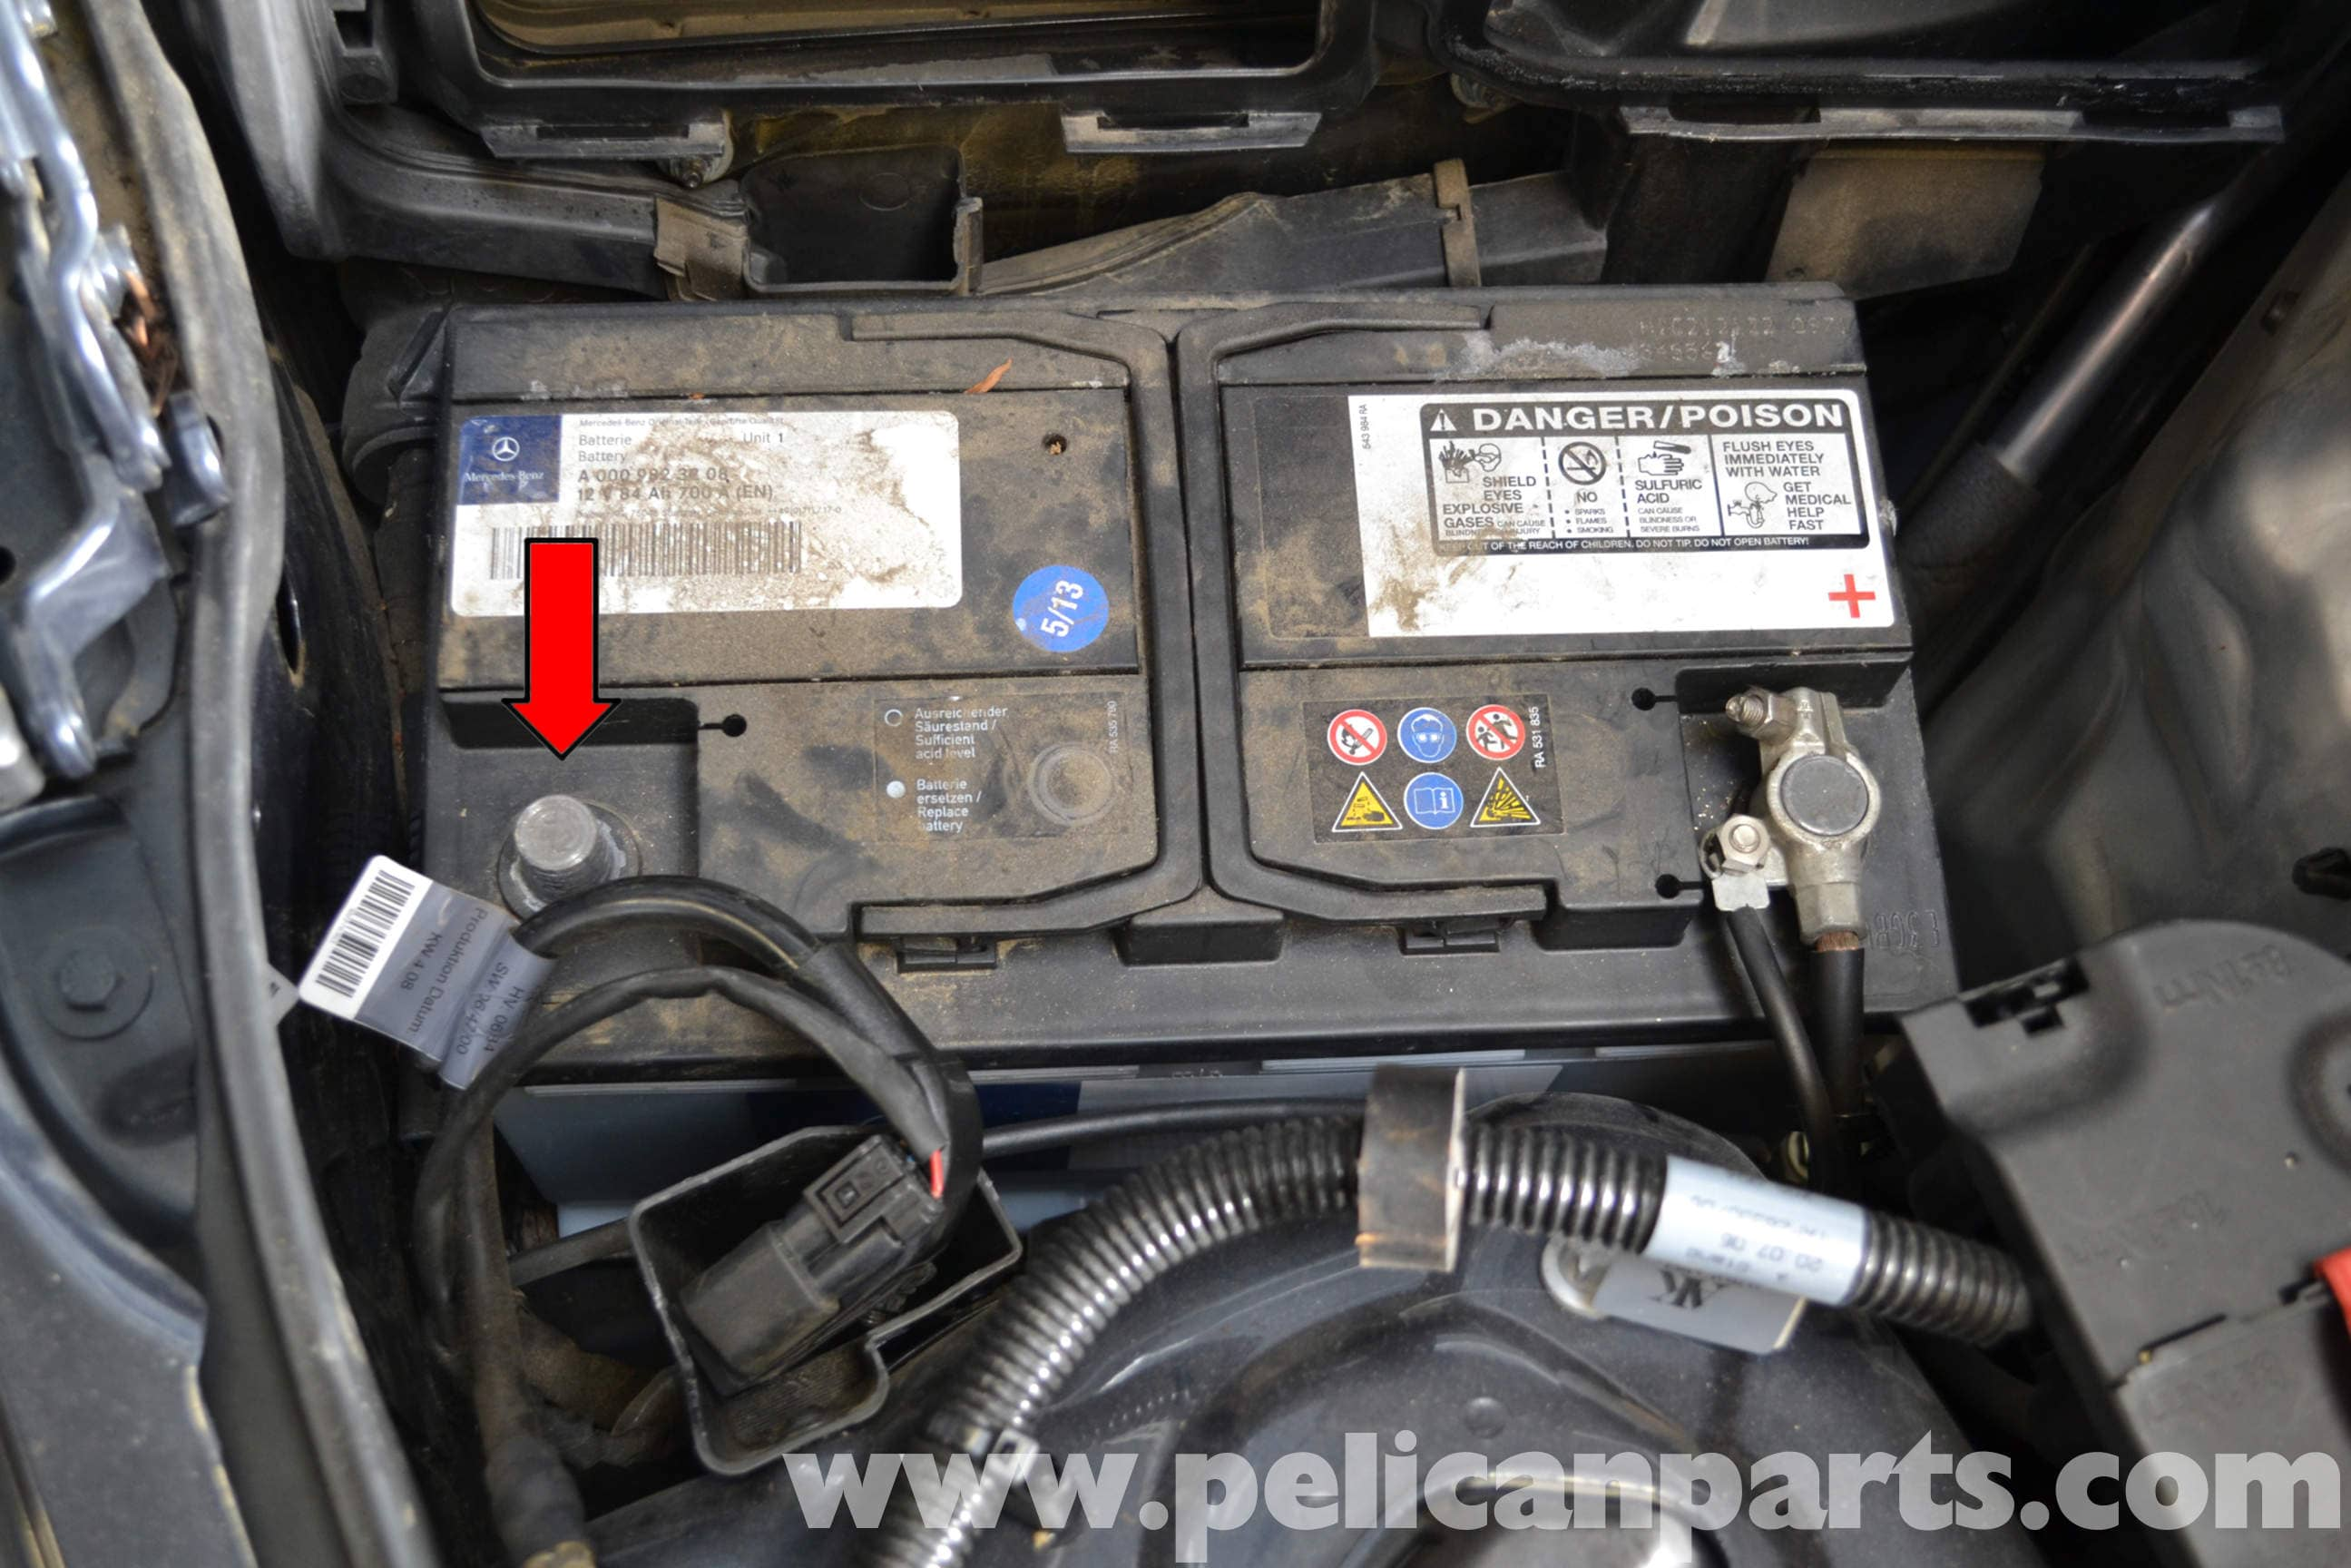 Mercedes-Benz W204 Electronic Steering Lock Replacement - (2008-2014